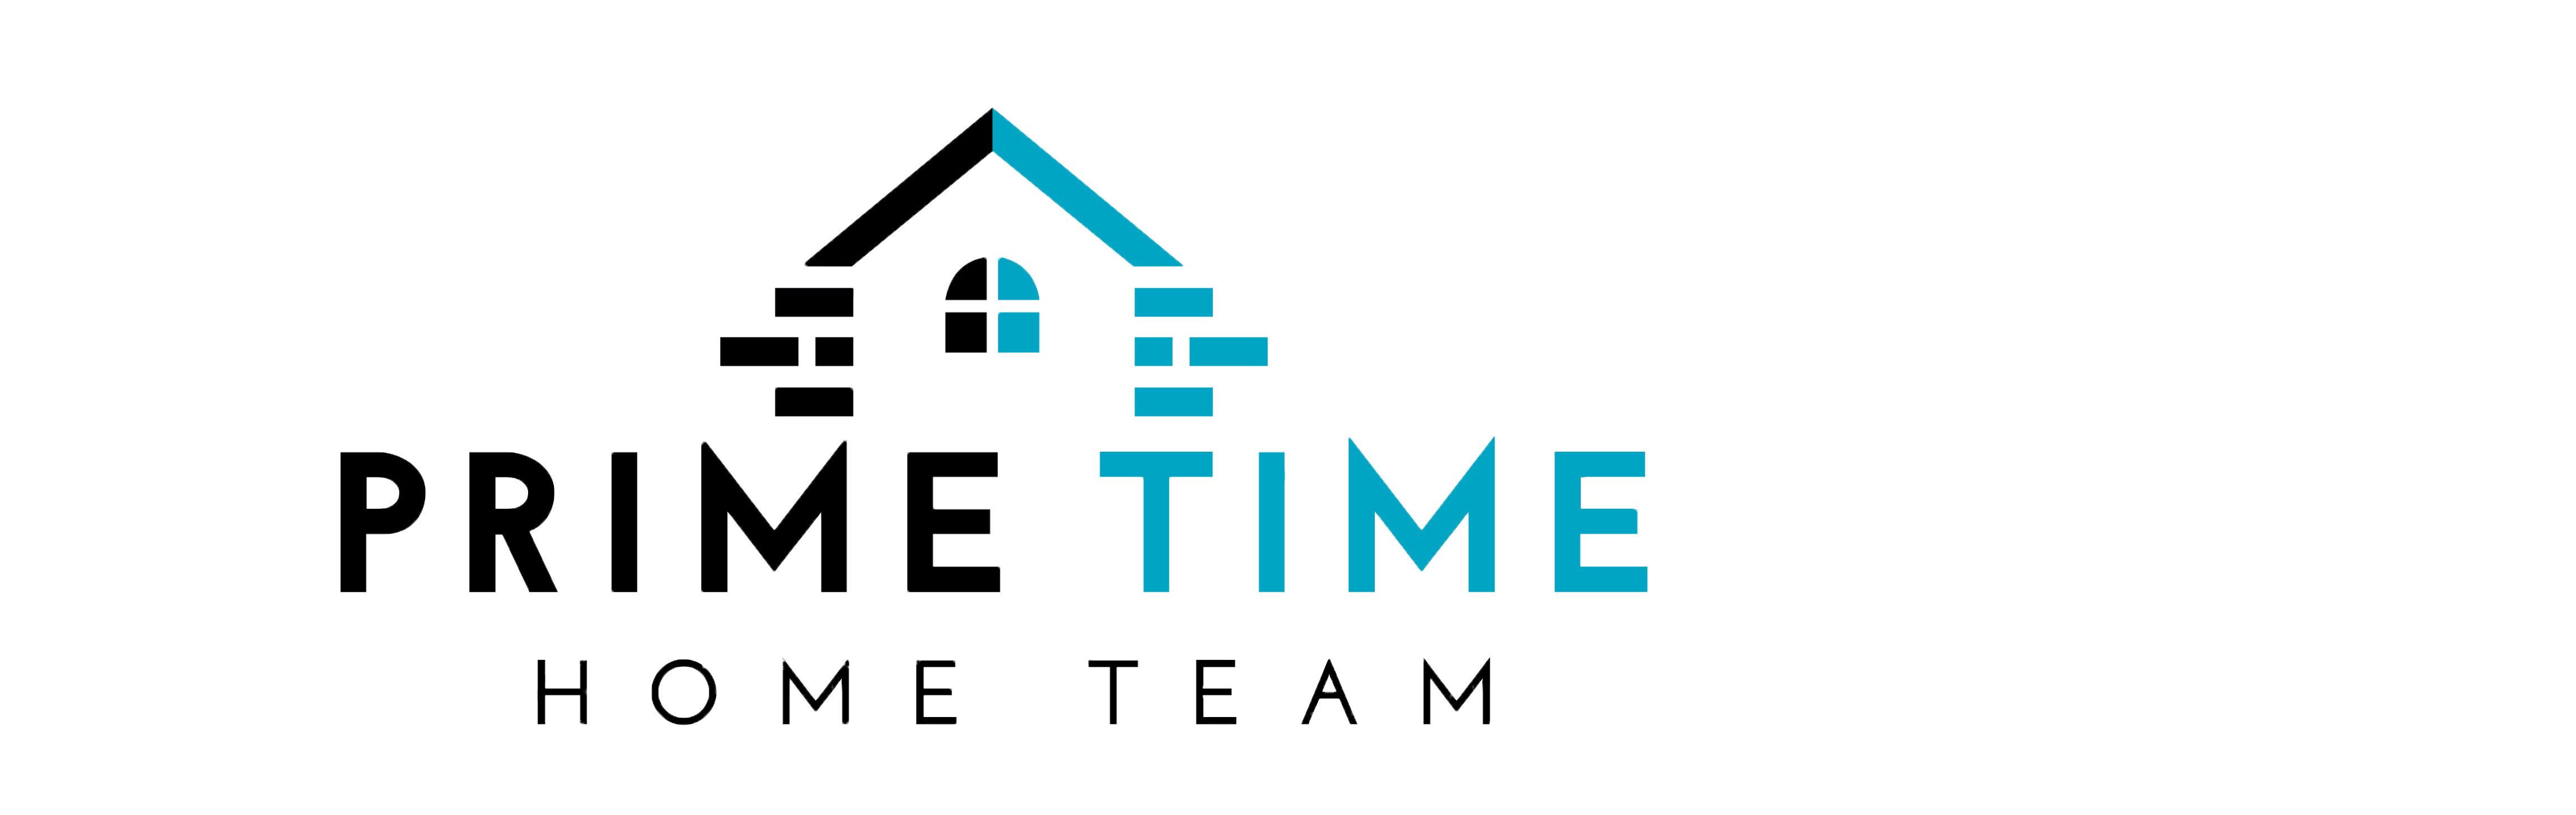 Prime Time Home Team logo